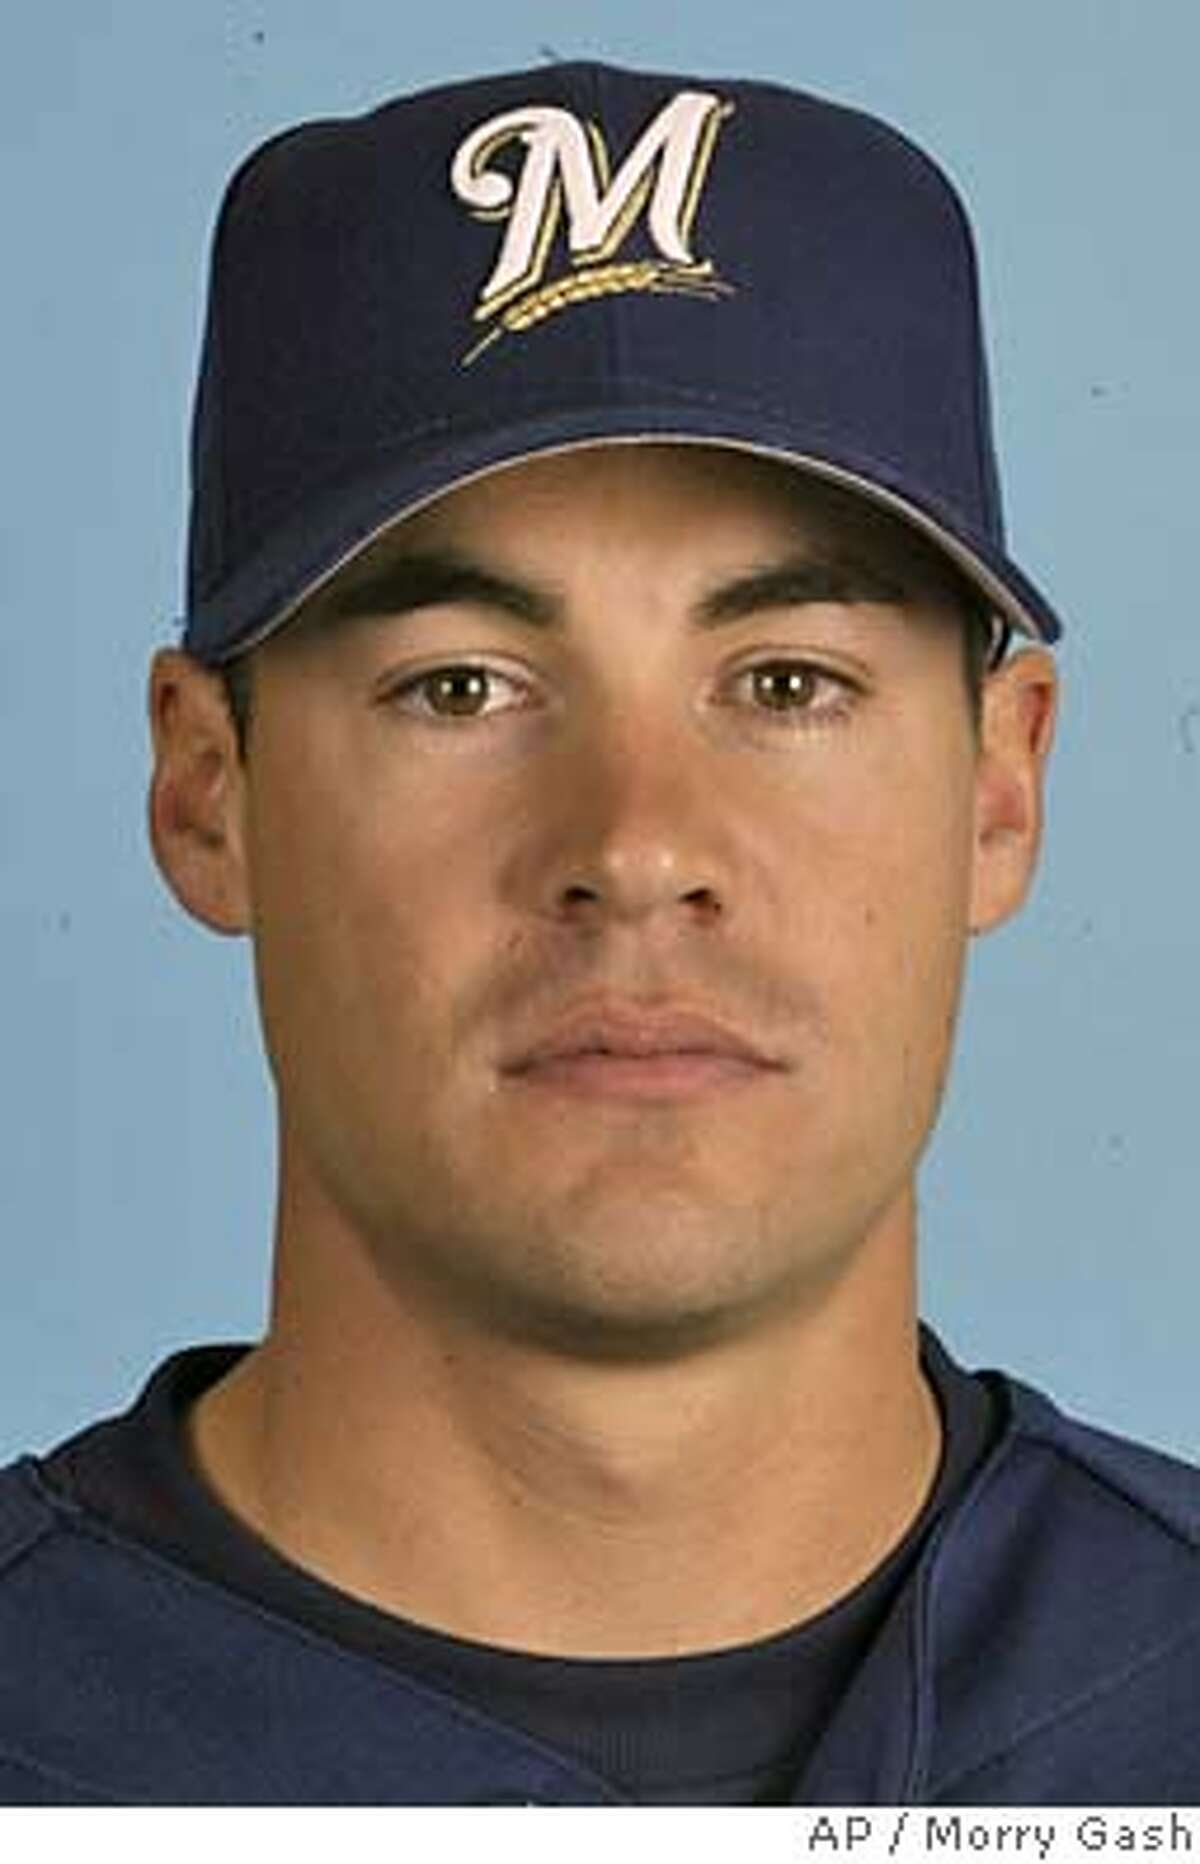 ** FILE ** This is a 2004 photo showing Milwaukee Brewers outfielder Scott Podsednik. The Brewers have extended Podsednik's contract for two years, through the 2006 season, the team said Wednesday May 5, 2004. (AP Photo/Morry Gash)